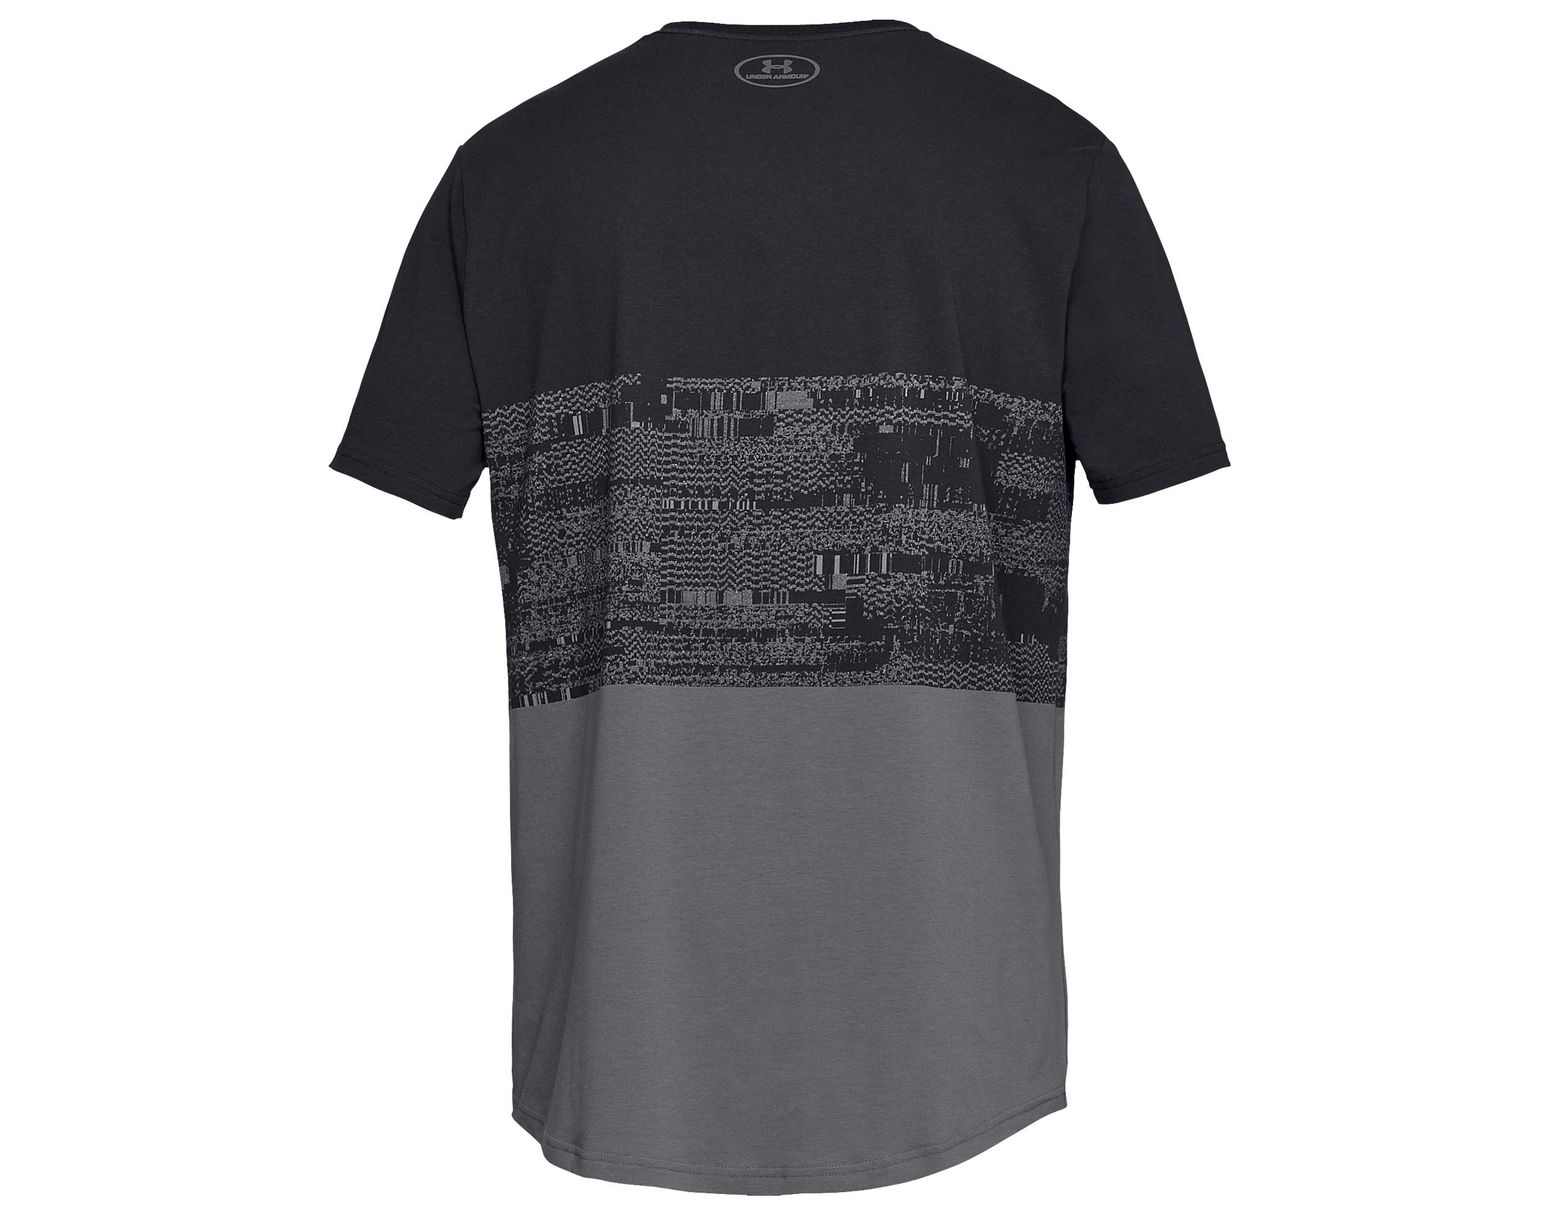 newest 5df5f 88378 Under Armour Baseline Btb T-shirt in Gray for Men - Lyst